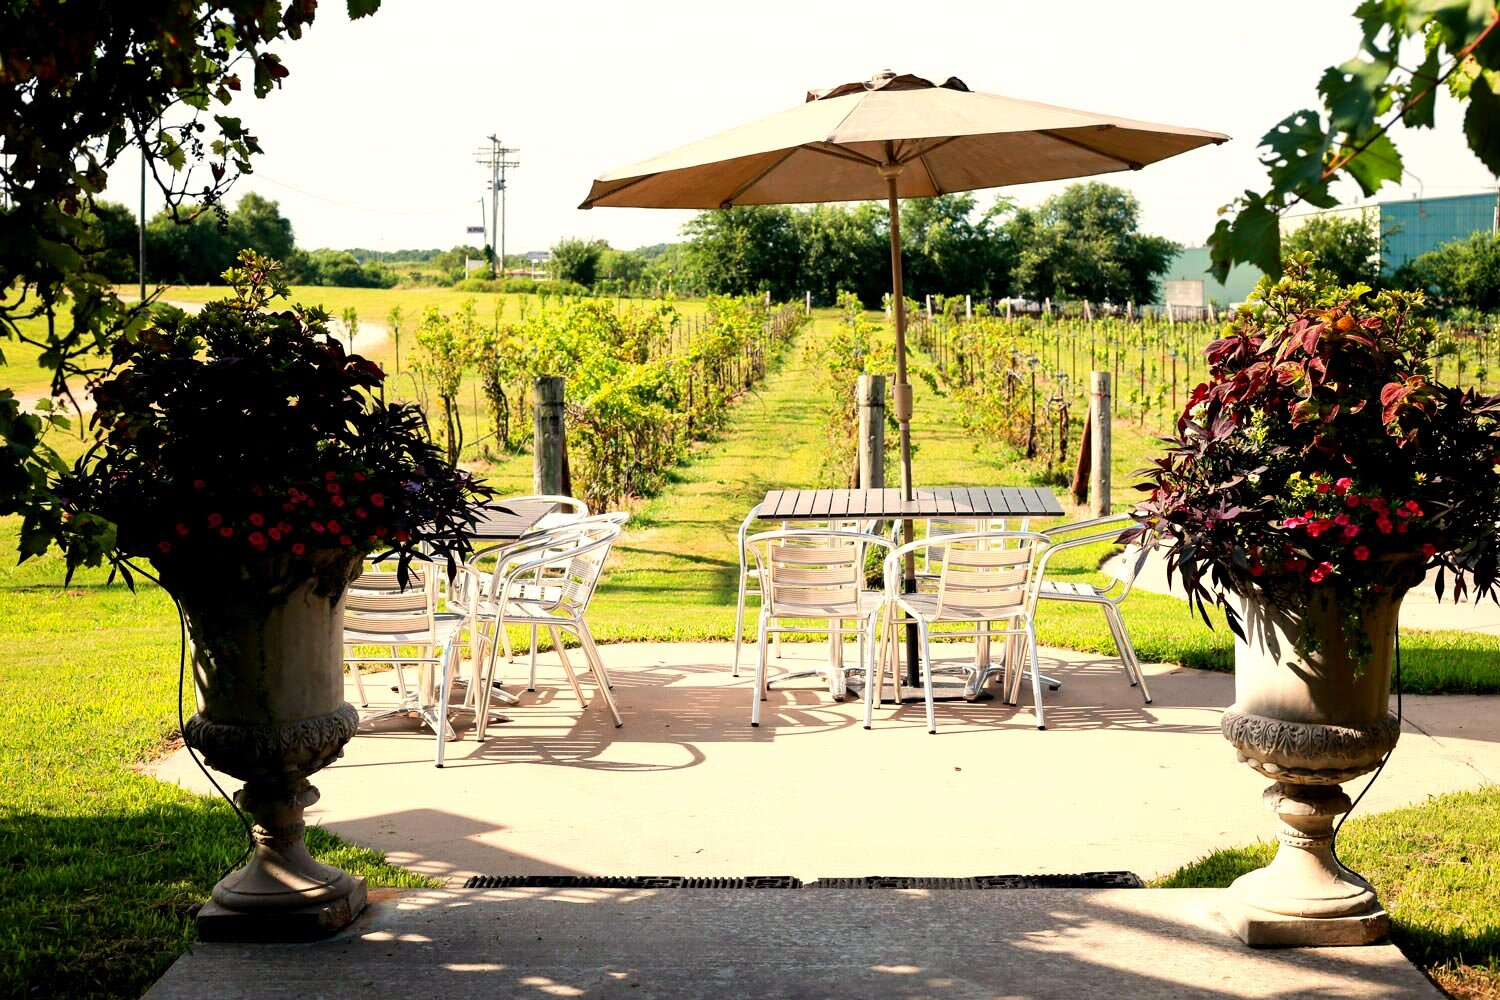 Vineyard & Gazebo - Our vineyard and gazebo can serve as the perfect outdoor venue for your event. If you're looking for a romantic venue with rural charm, the vineyard is perfect for you.